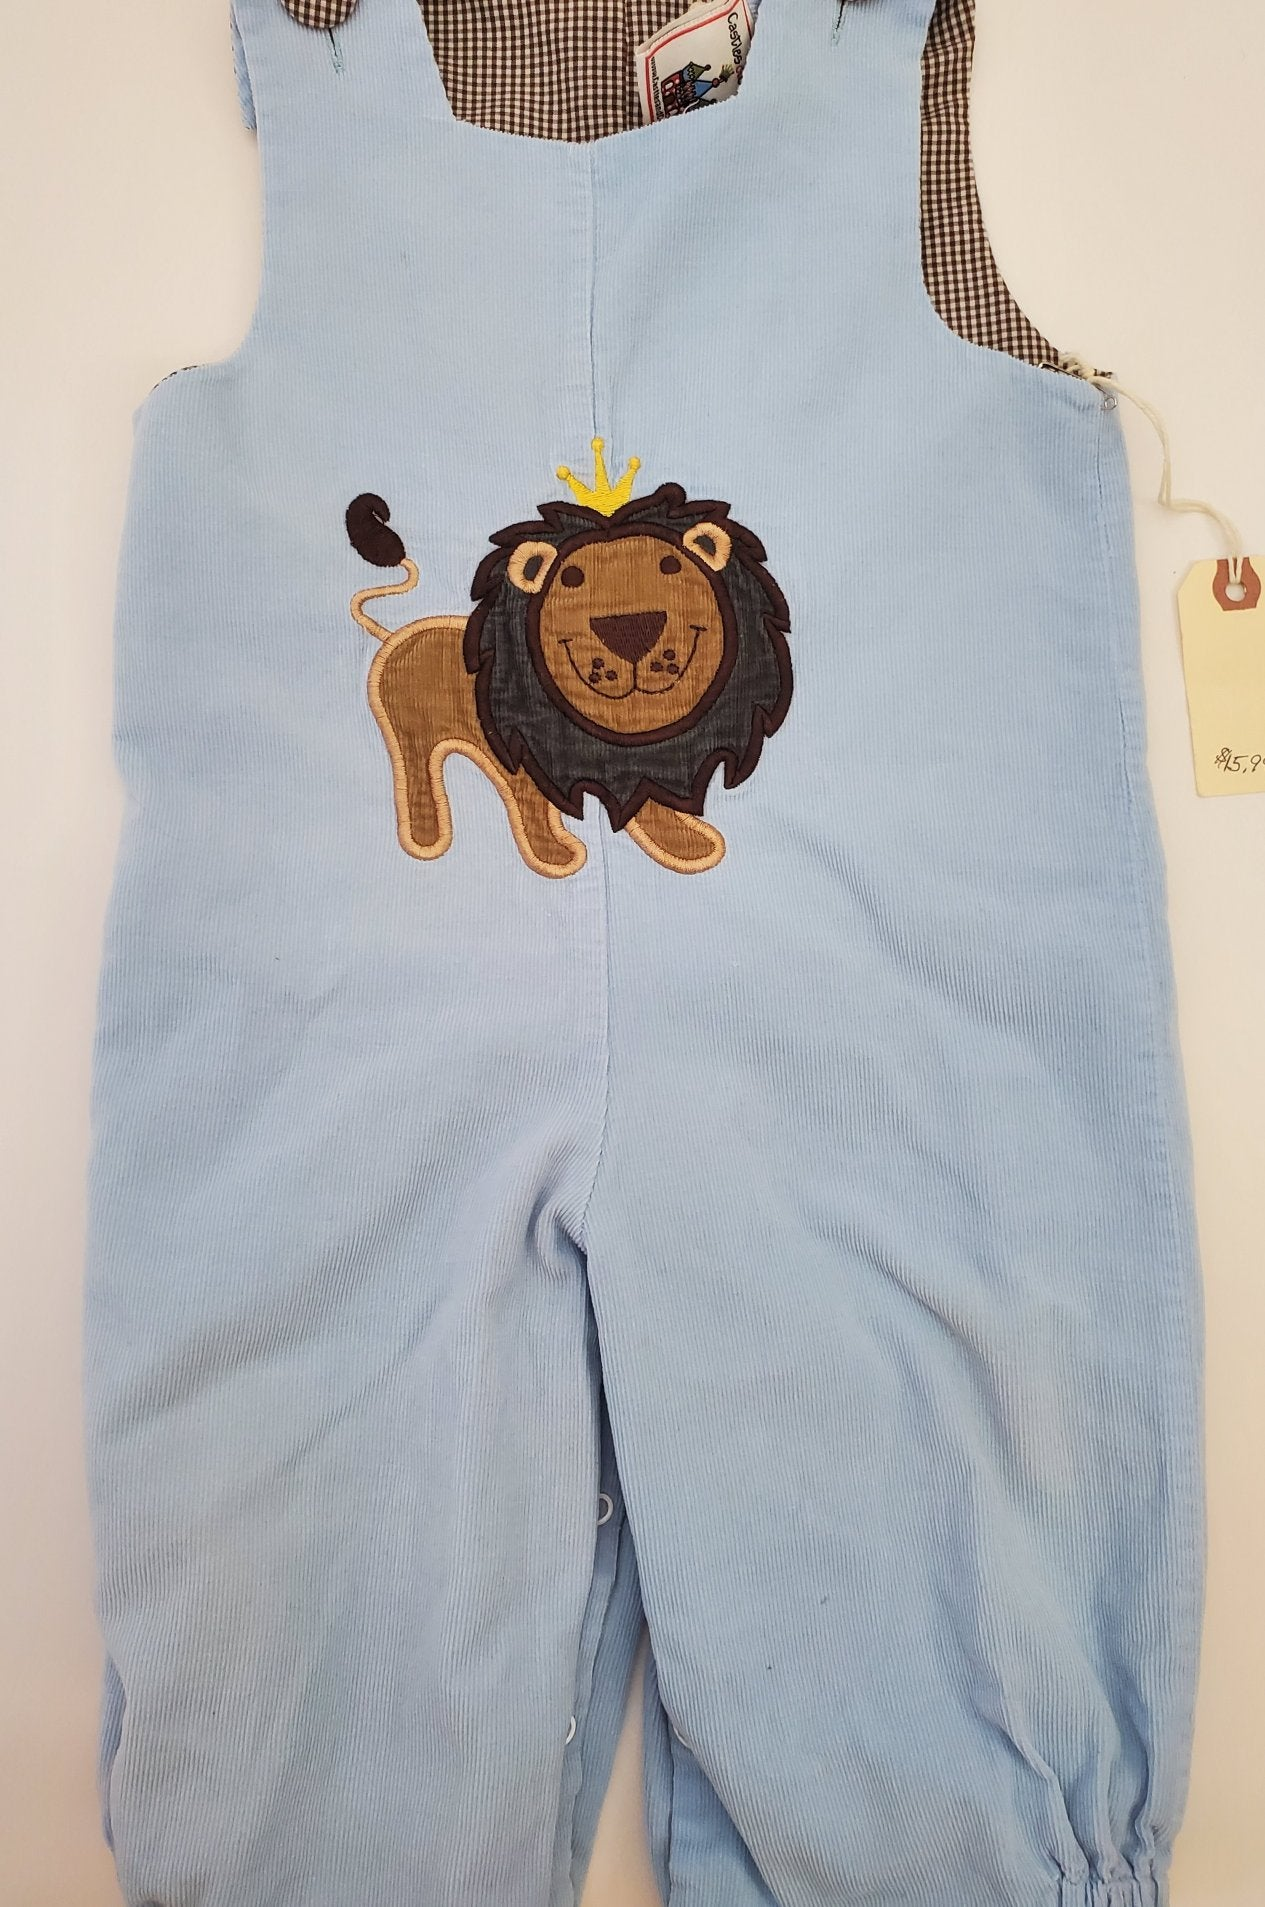 Resale 12 m Castle & Crowns Reversible Smocked Overalls - Car & Lion